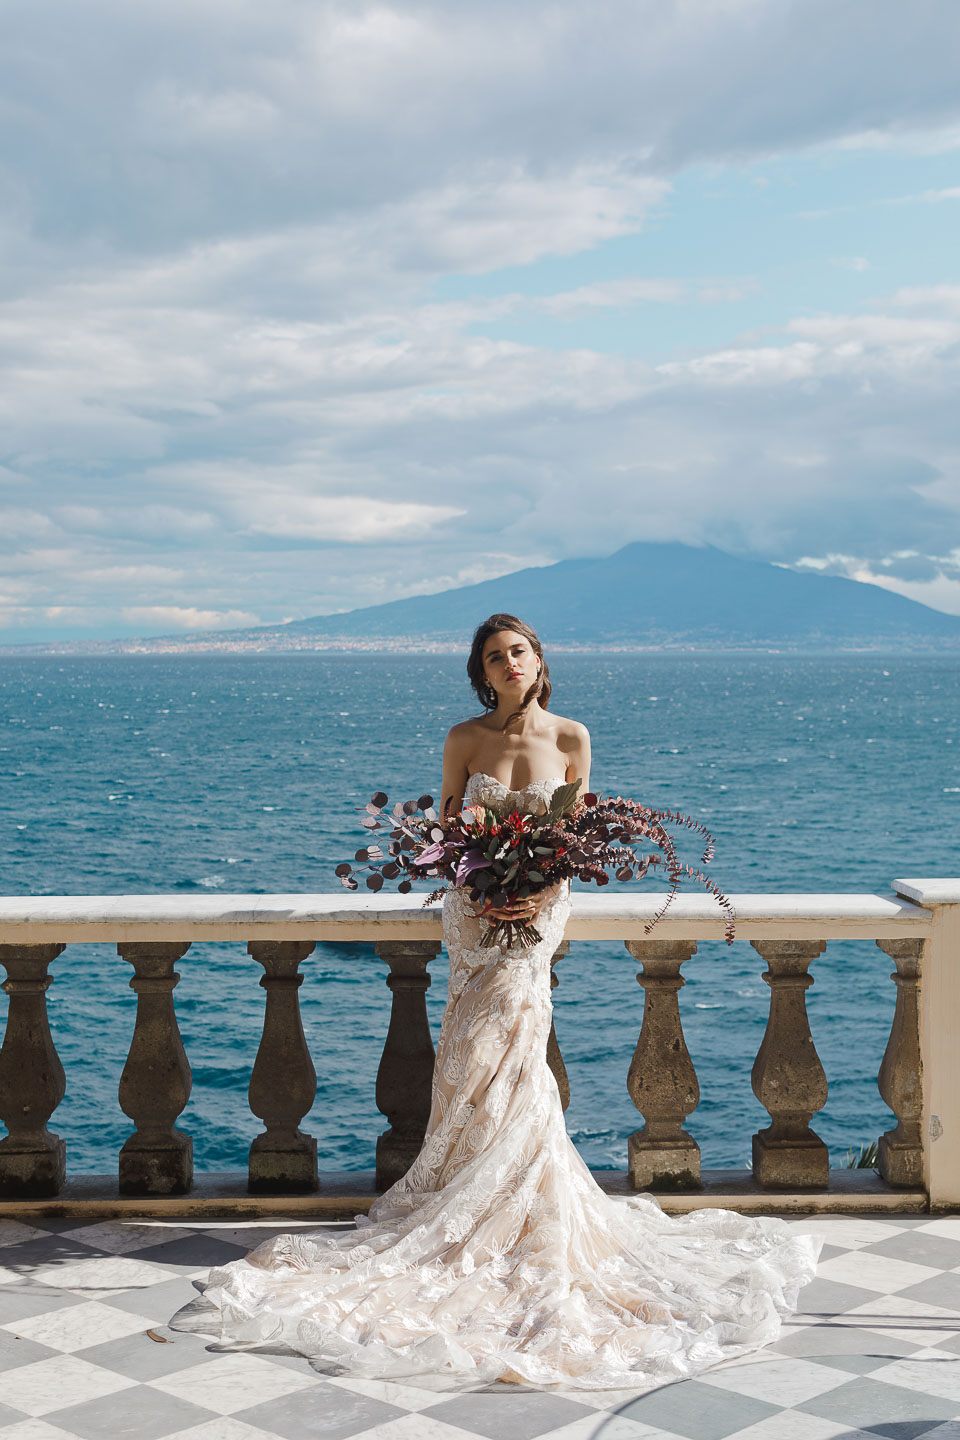 Villa Astor luxury property available exclusive rent rental evening light music best venue Italy The Heritage Collection bridal seaside view photo portrait